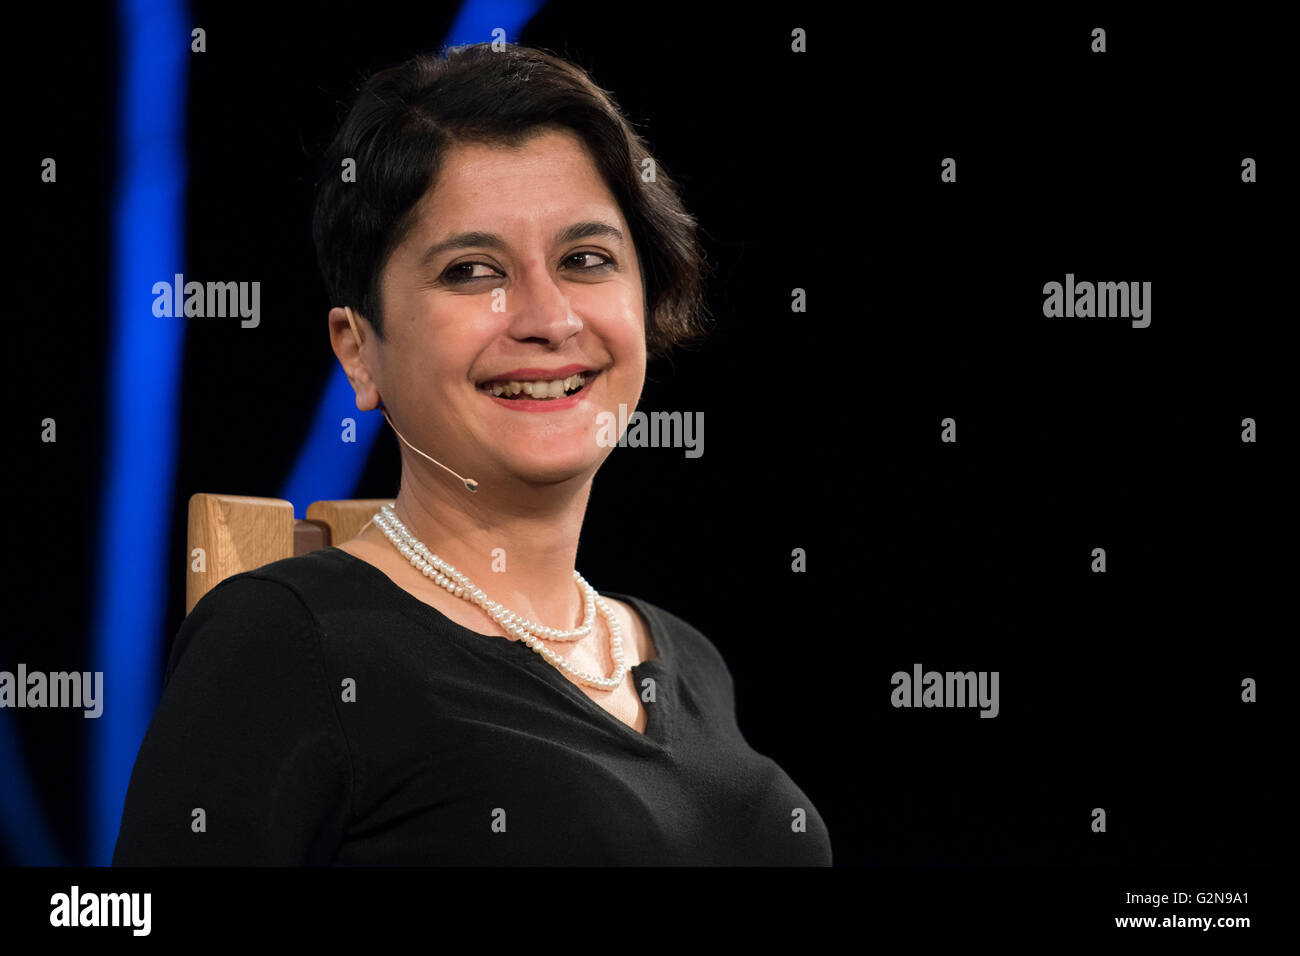 Shami Chakrabarti speaks at the 2016 hay festival in Hay-on-Wye, Wales, UK. - Stock Image